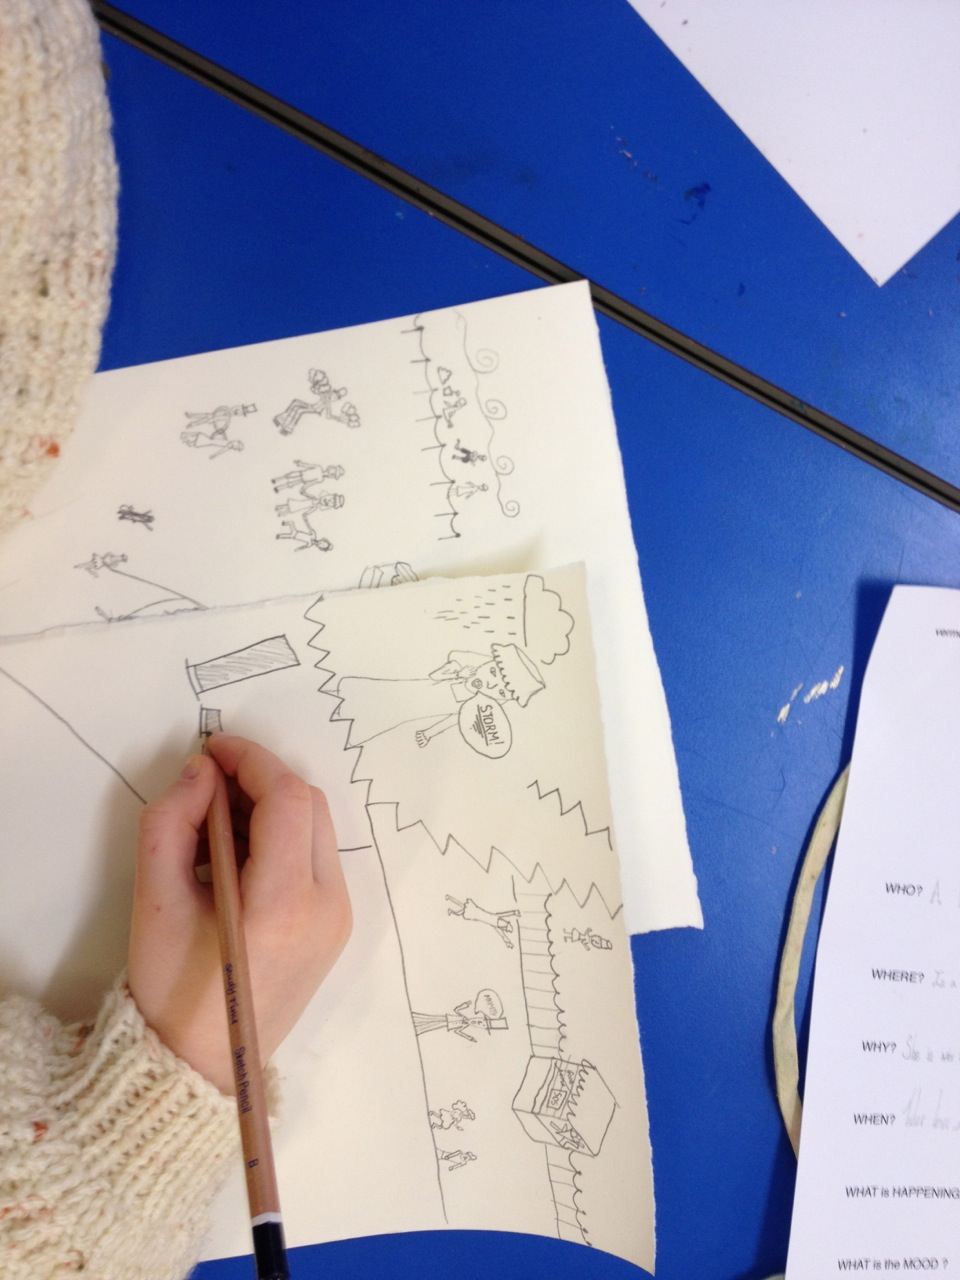 Working on Our Storyboards